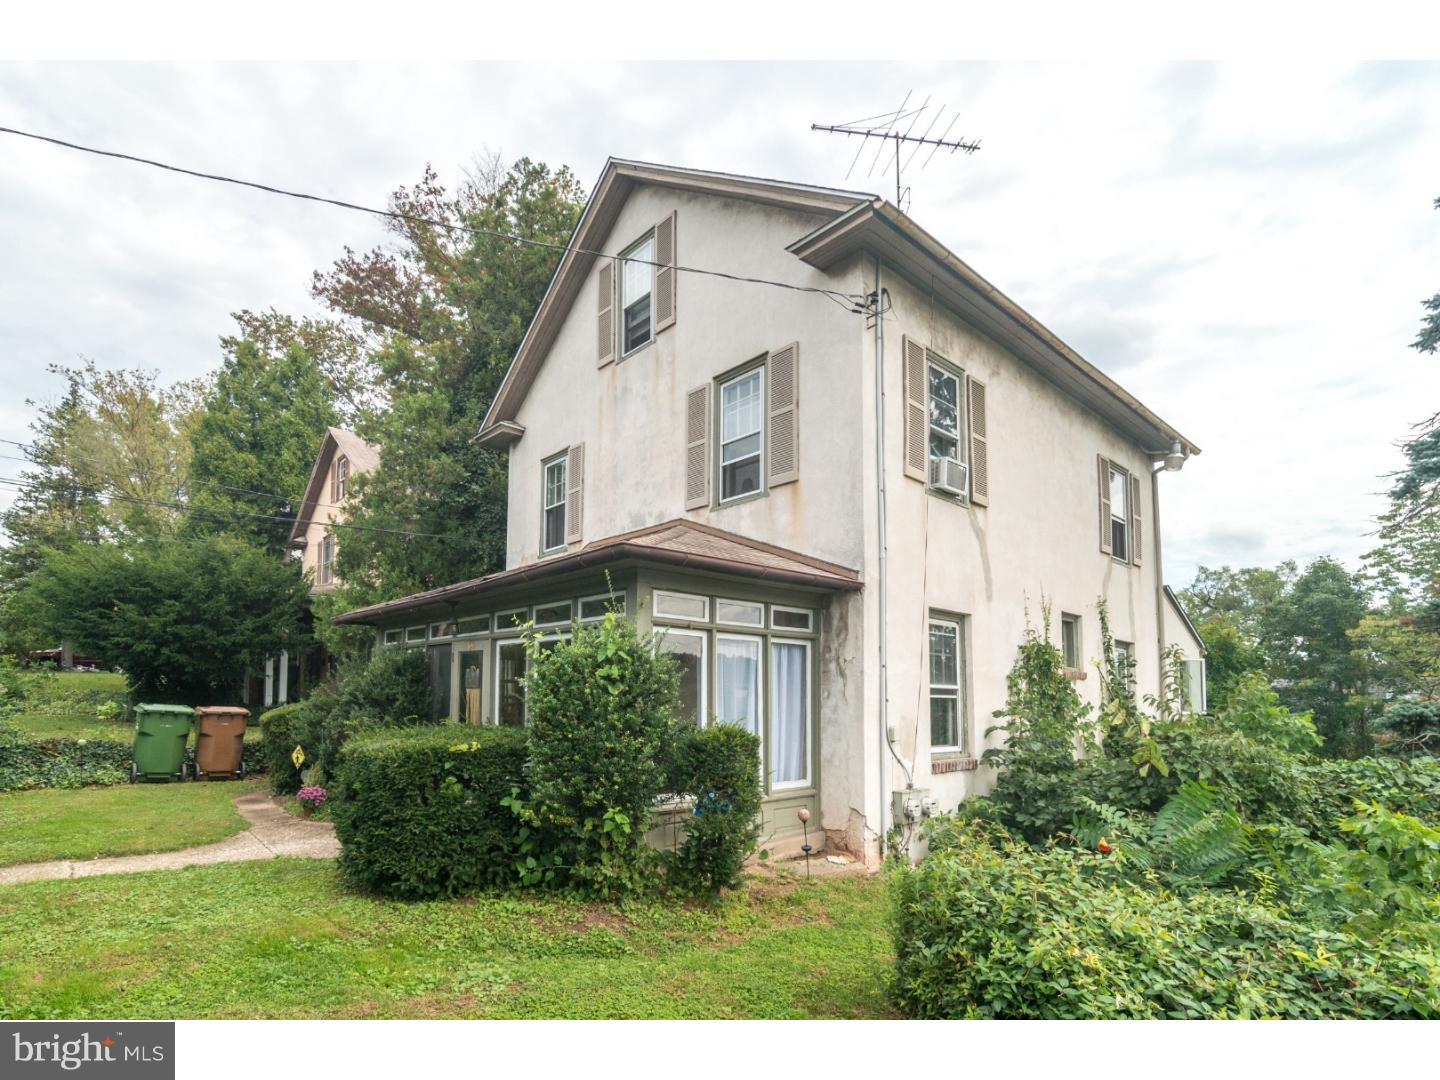 103 SUMMIT AVENUE, FORT WASHINGTON, PA 19034